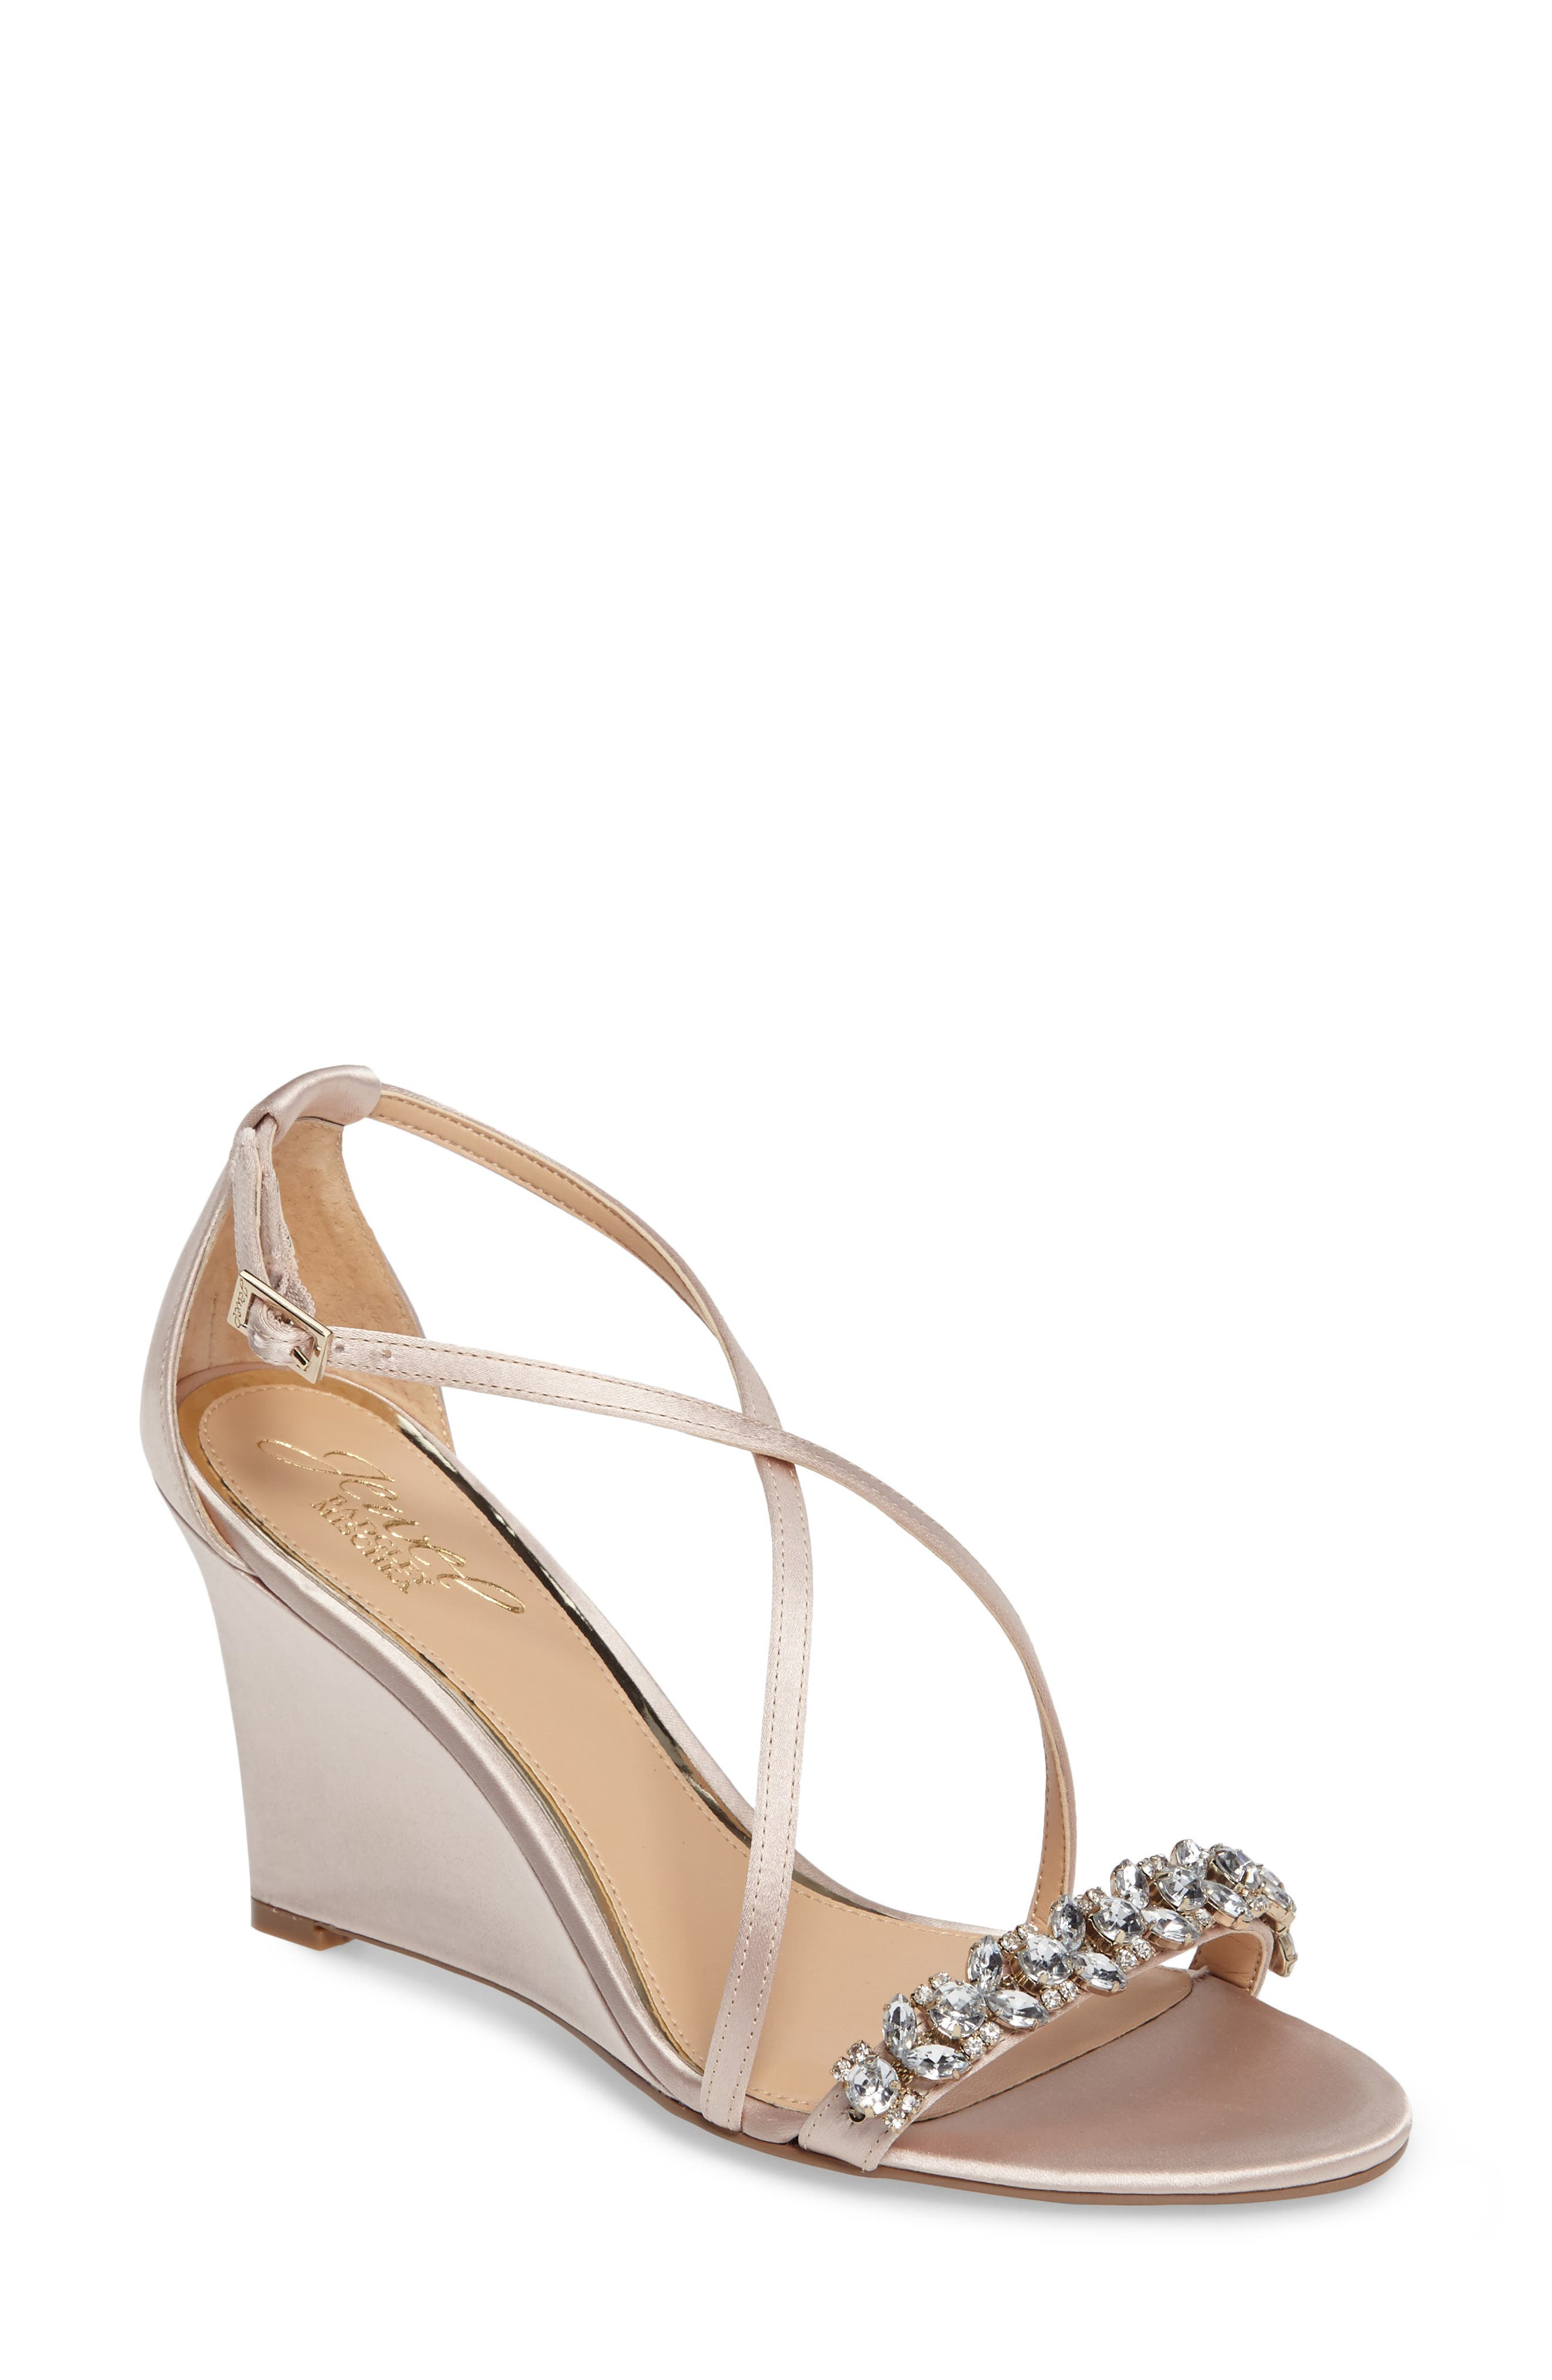 Jewel Badgley Mischka Embellished Strappy Wedge Sandal (Women)